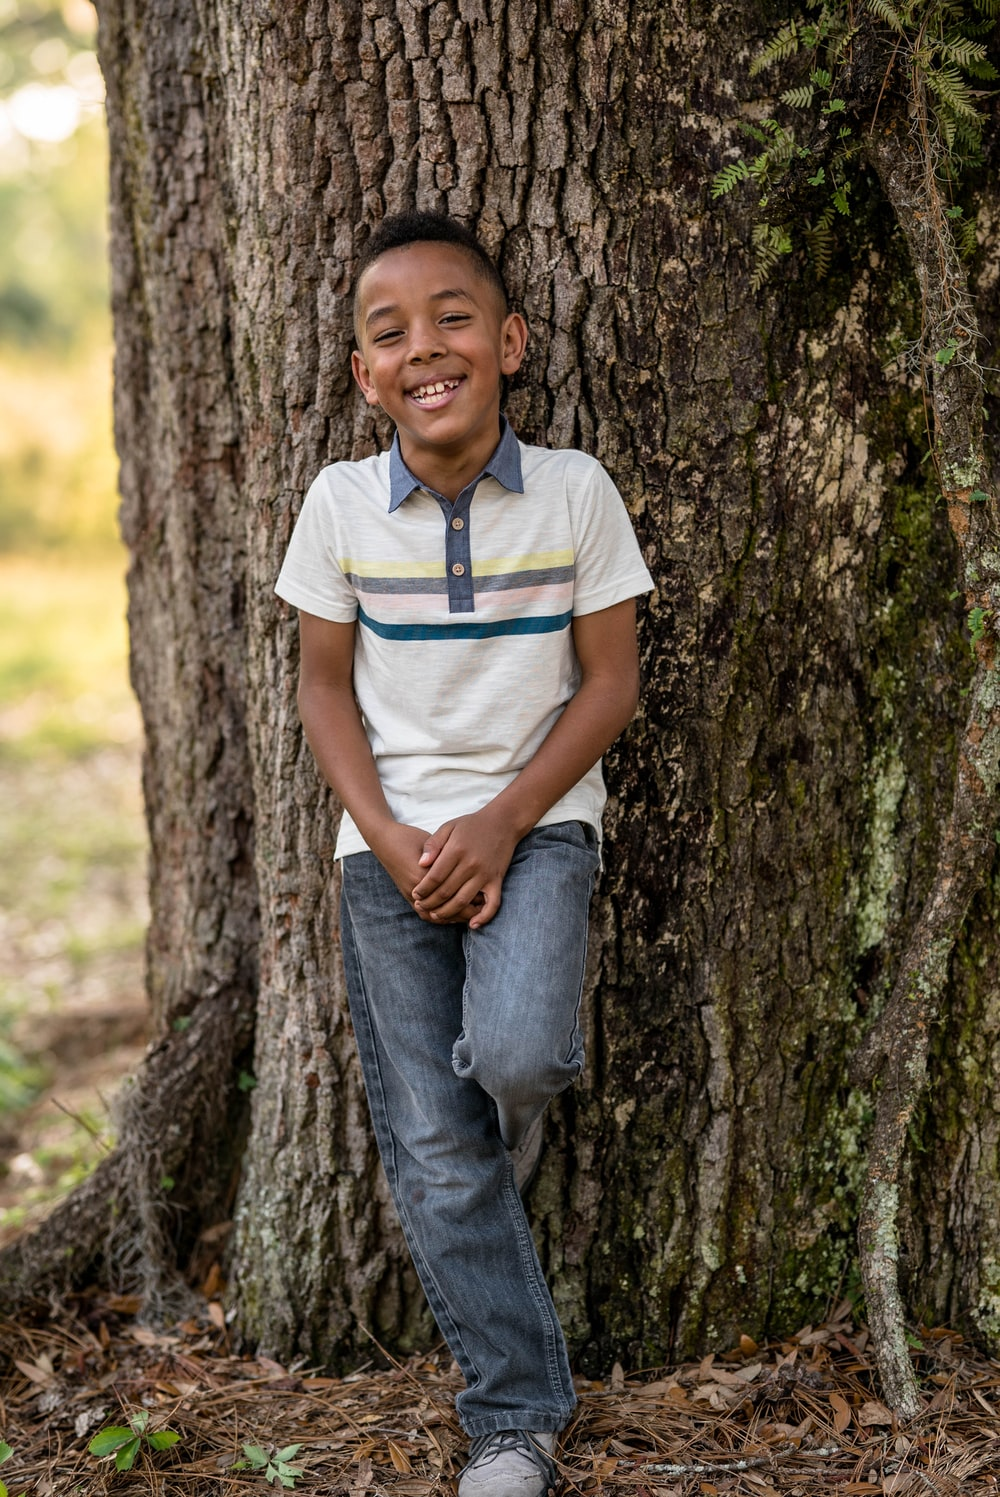 smiling boy leaning on tree during daytime